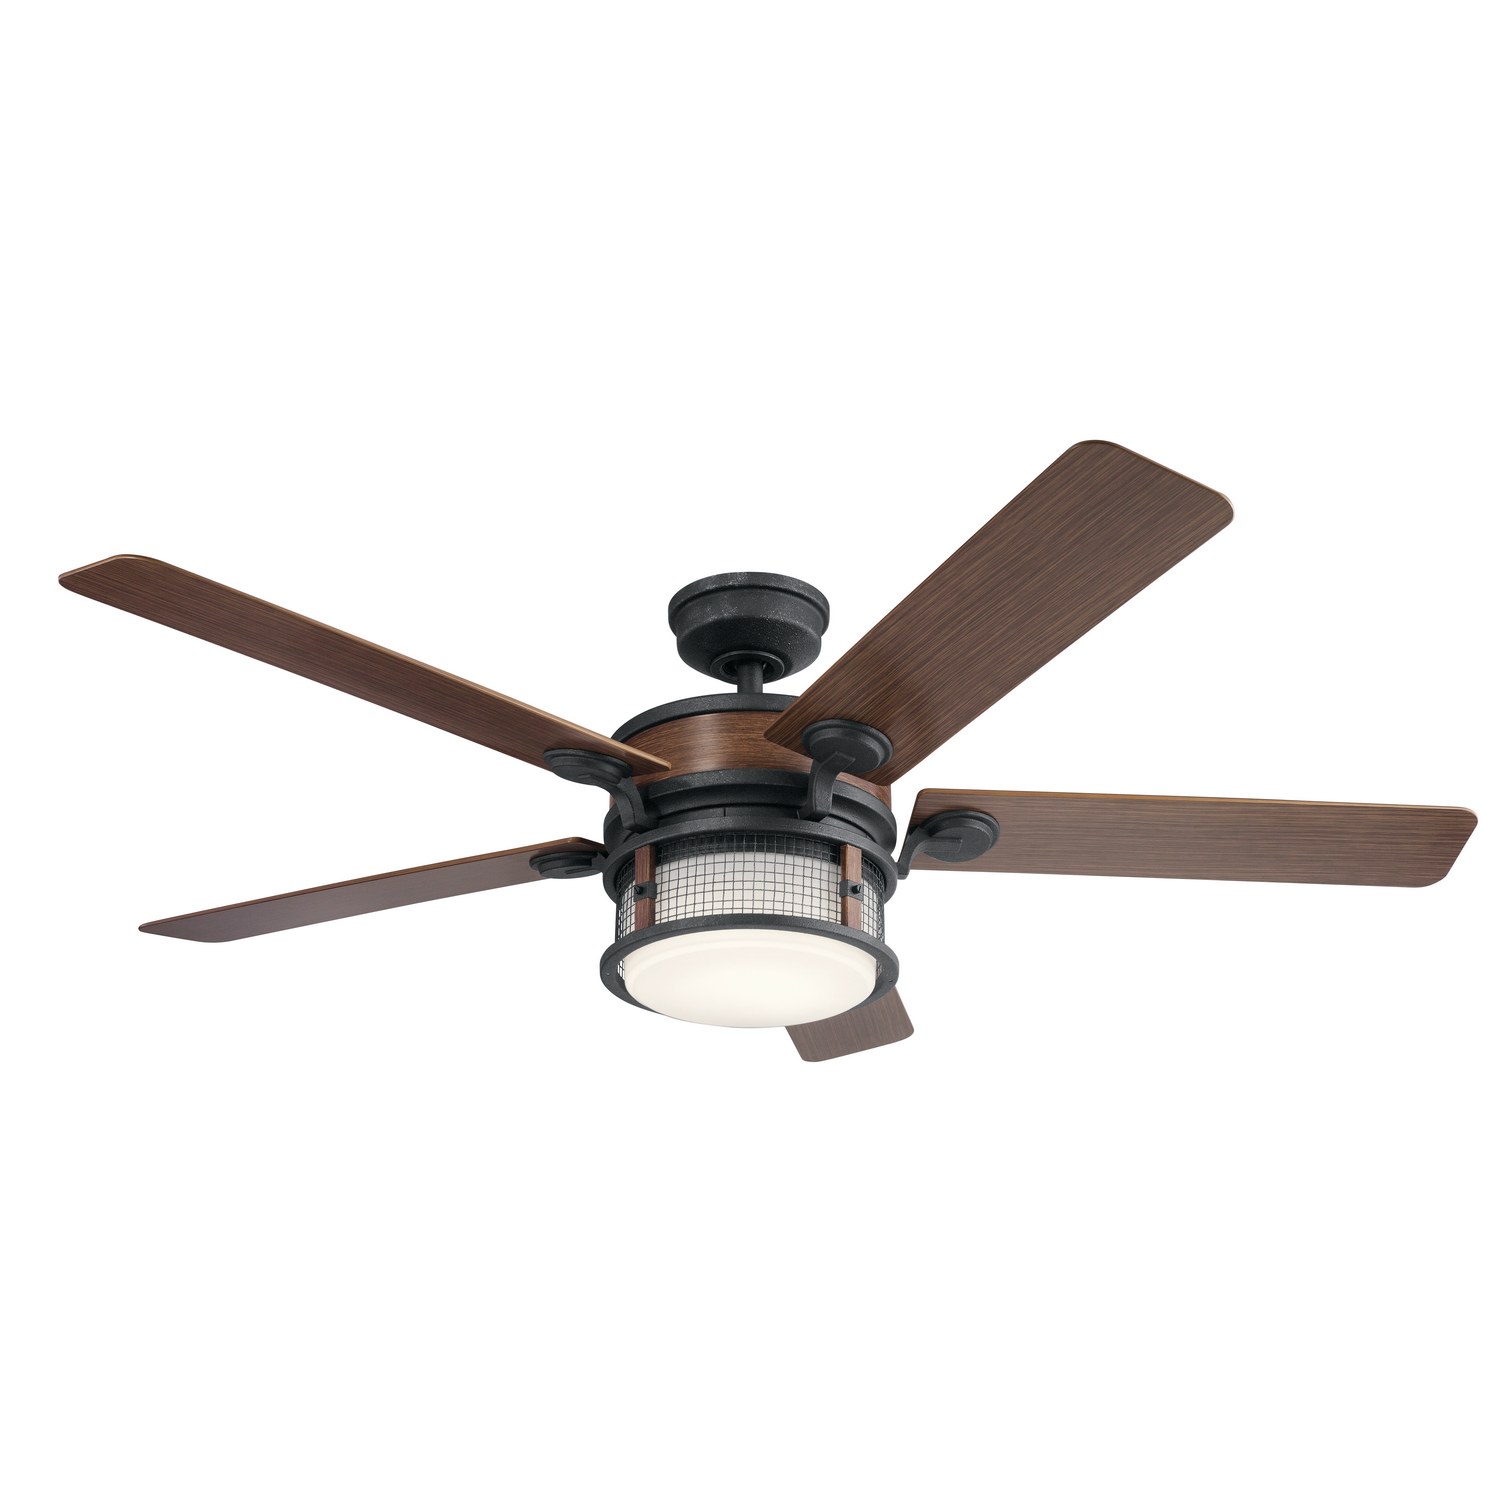 60 inchCeiling Fan from the Ahrendale collection by Kichler 310170AUB